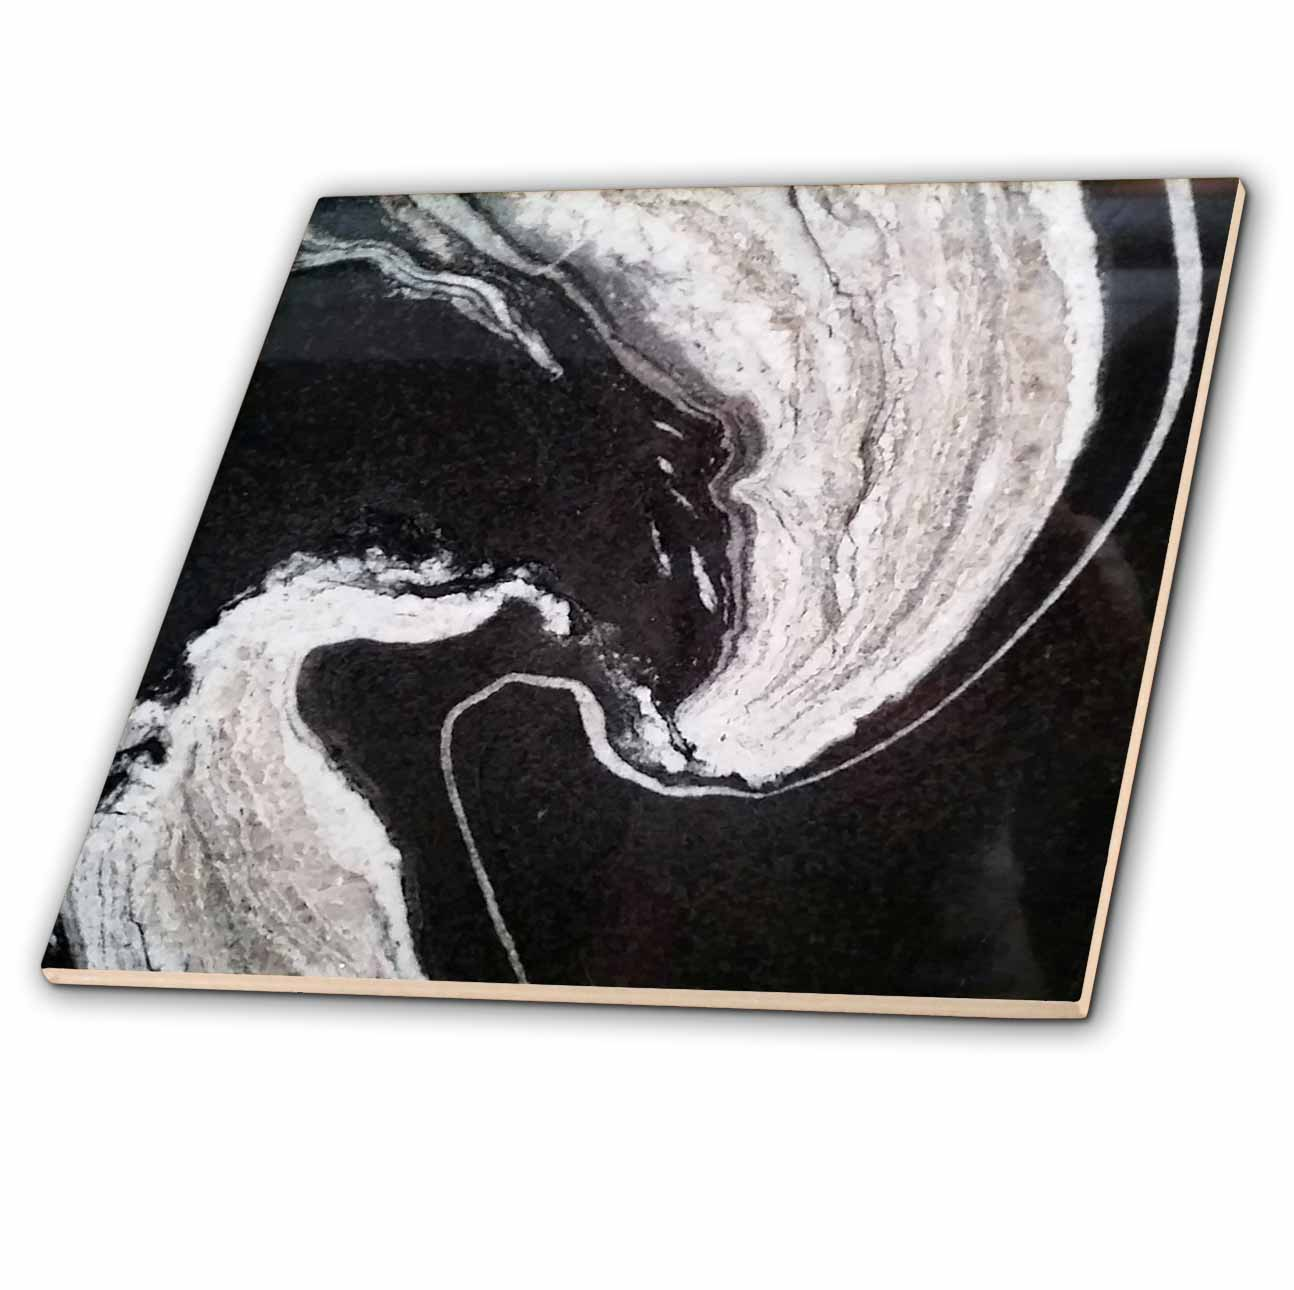 3dRose Image of Dramatic Black And White Swirly Granite - Ceramic Tile, 4-inch